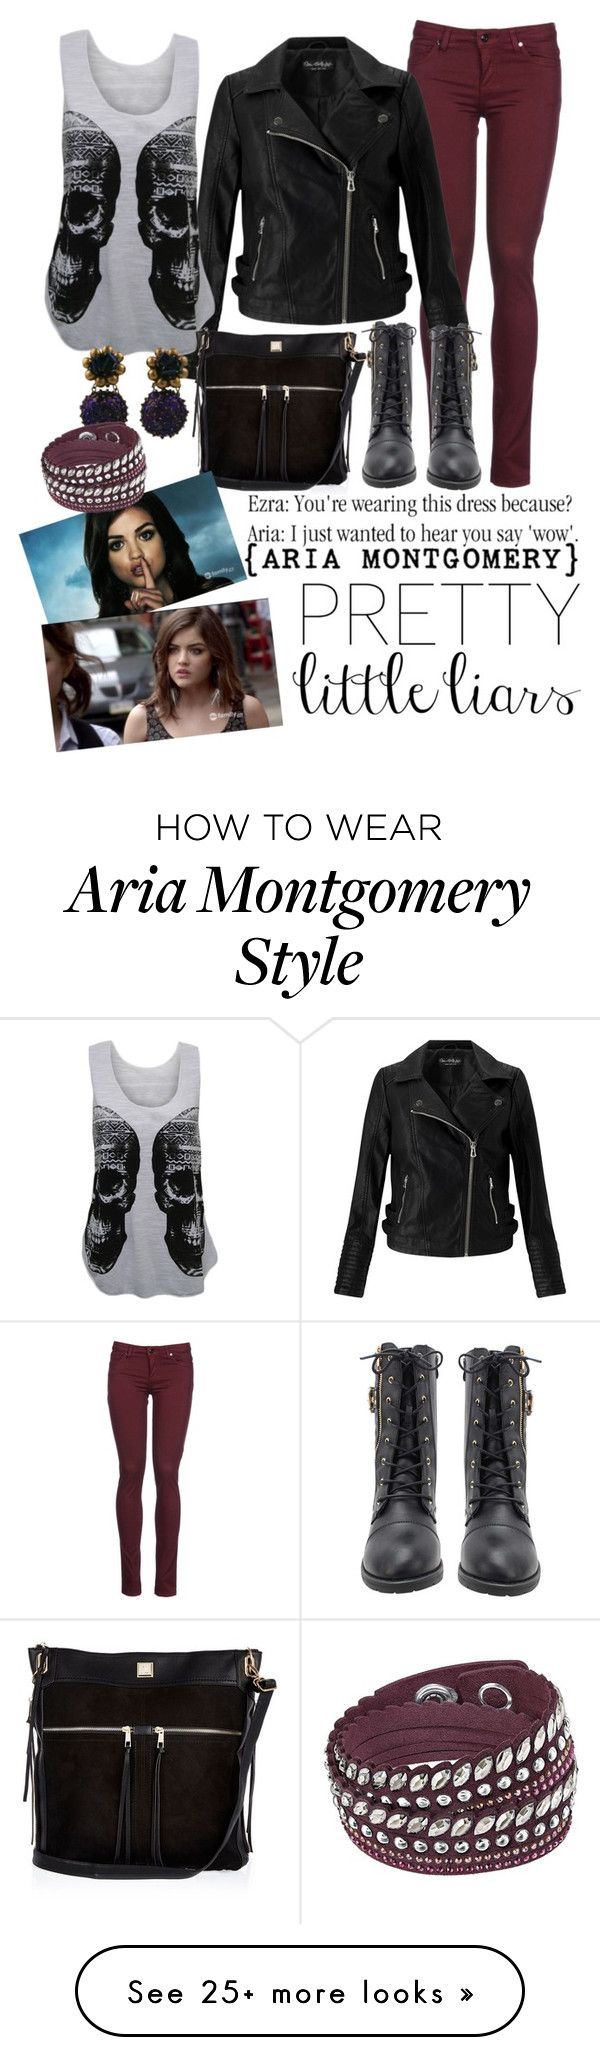 """""""ARIA MONTGOMERY - PLL SERIES"""" by ecarri on Polyvore featuring 8, Miss Selfridge, WearAll, River Island and Swarovski"""